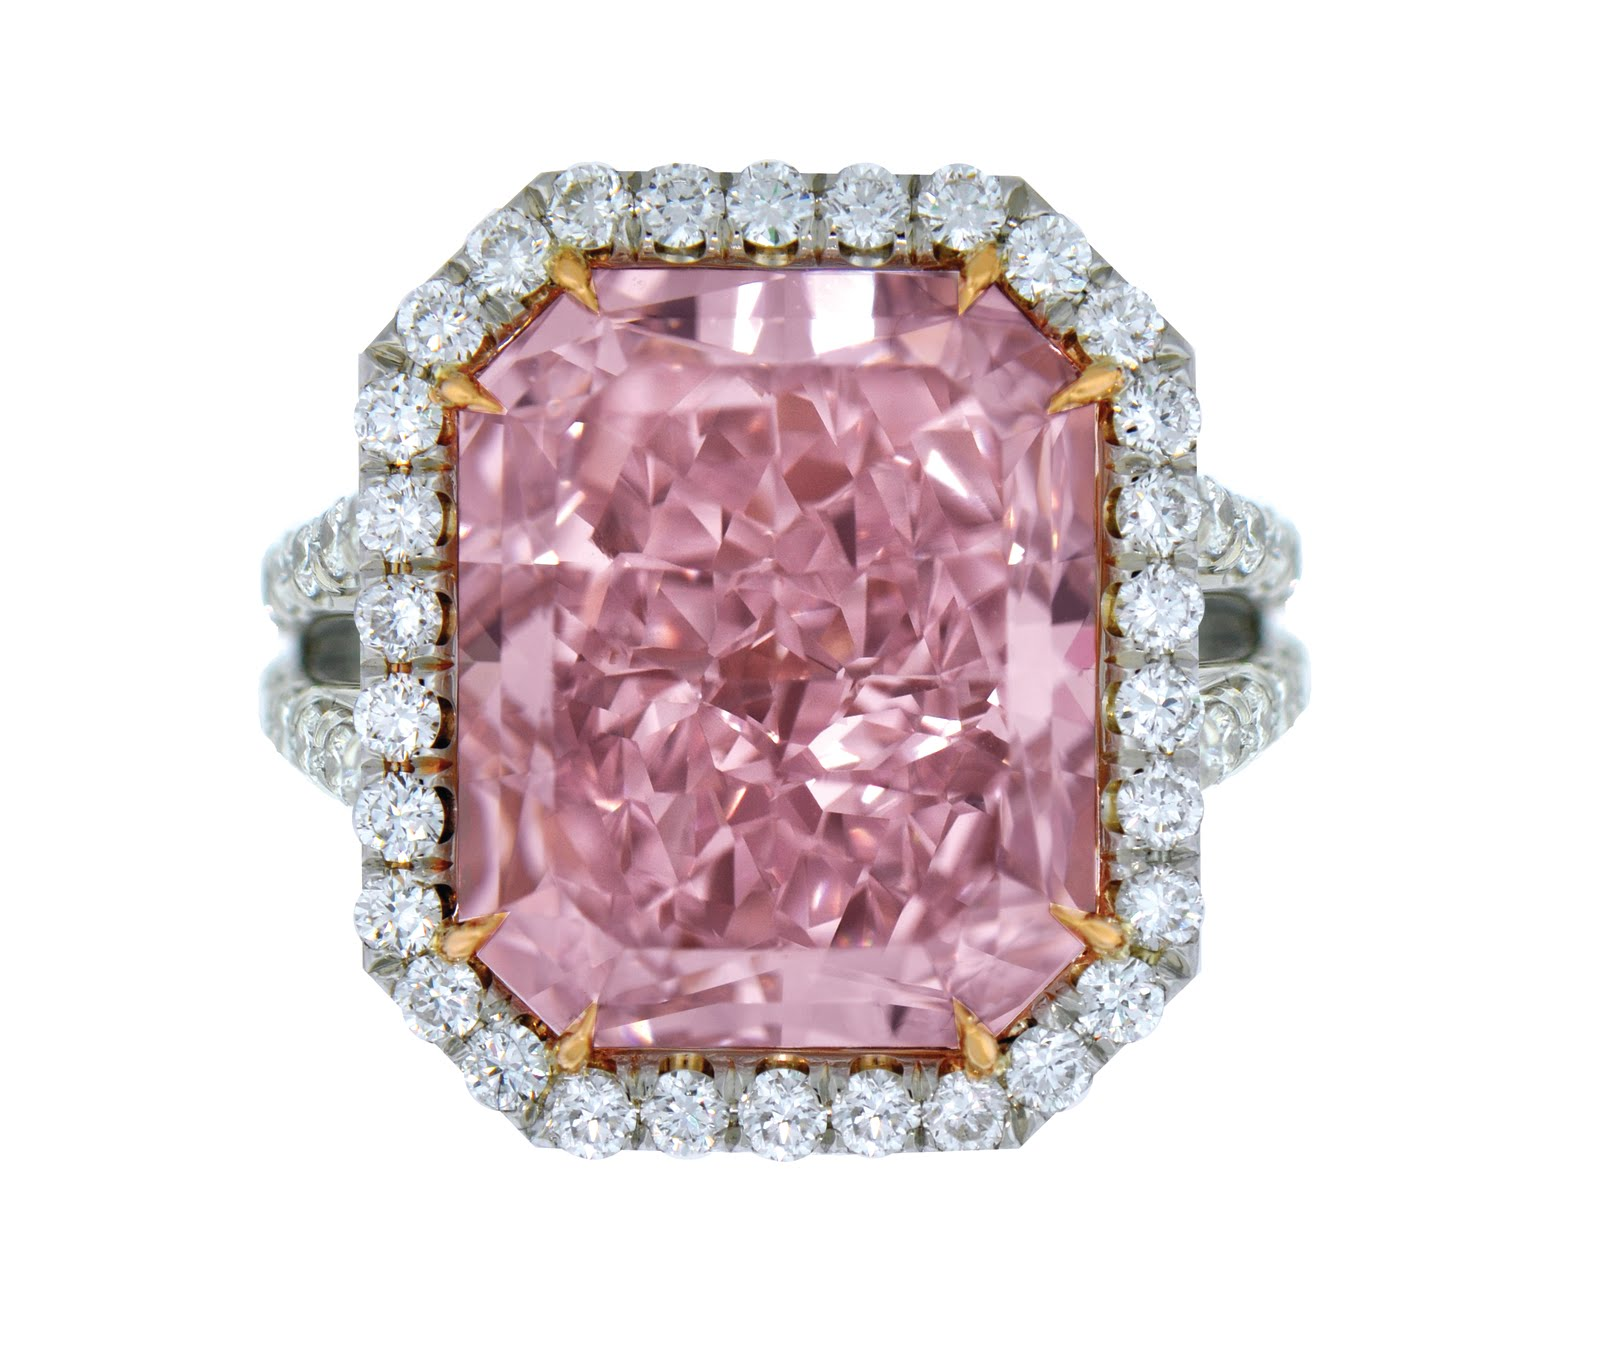 Jewelry News Network: Supersized Fancy Colored Diamond Rings from